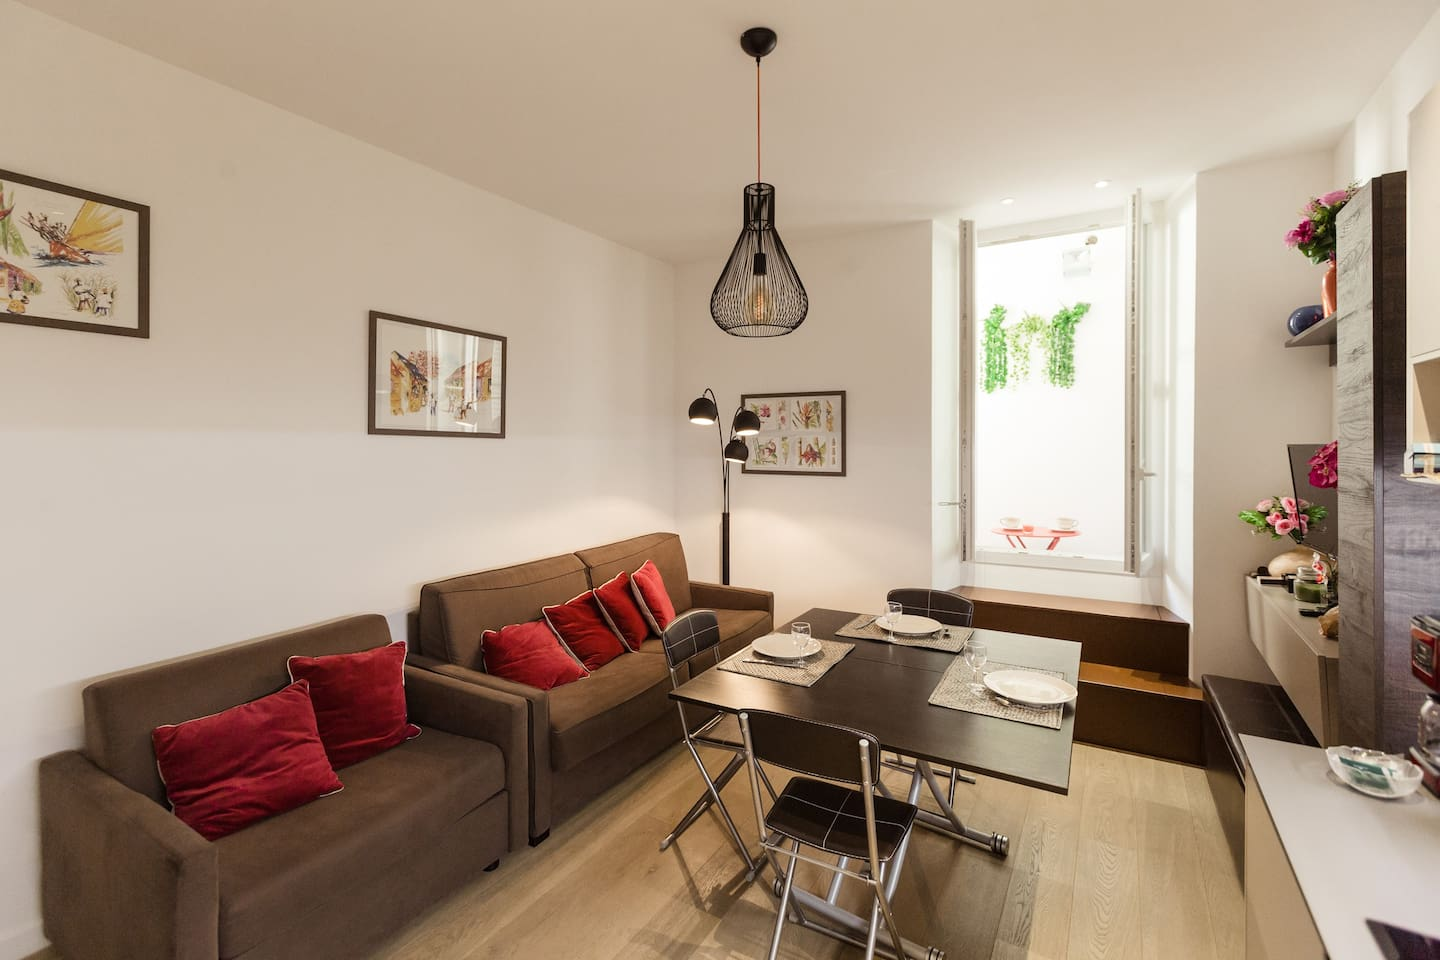 Beau studio max. 3 pers, climatisé, neuf, calme / Cozy studio, fully air-conditioned